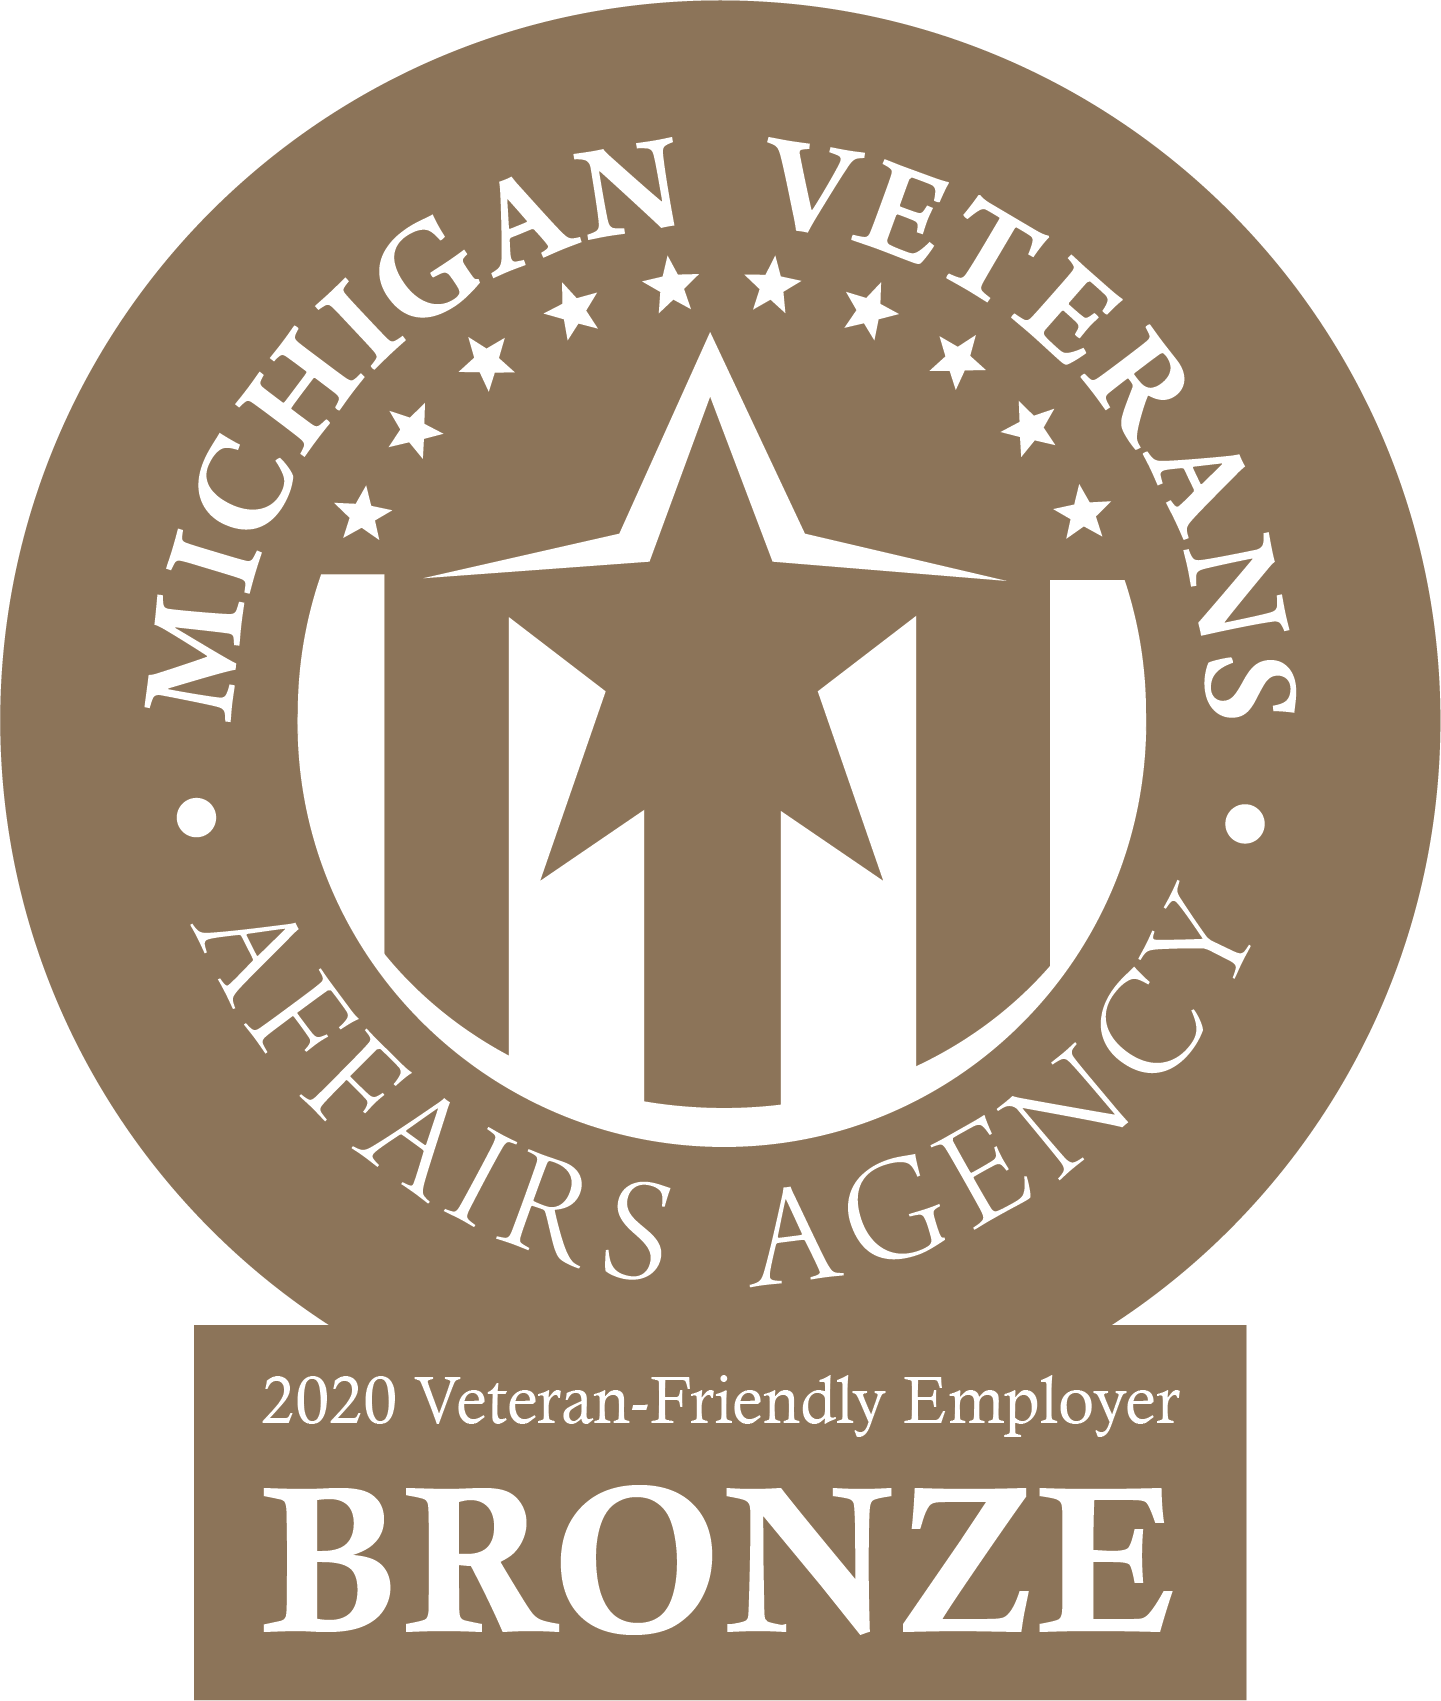 Michigan Veterans Affairs Agency - 2020 Veteran-Friendly Employer Bronze